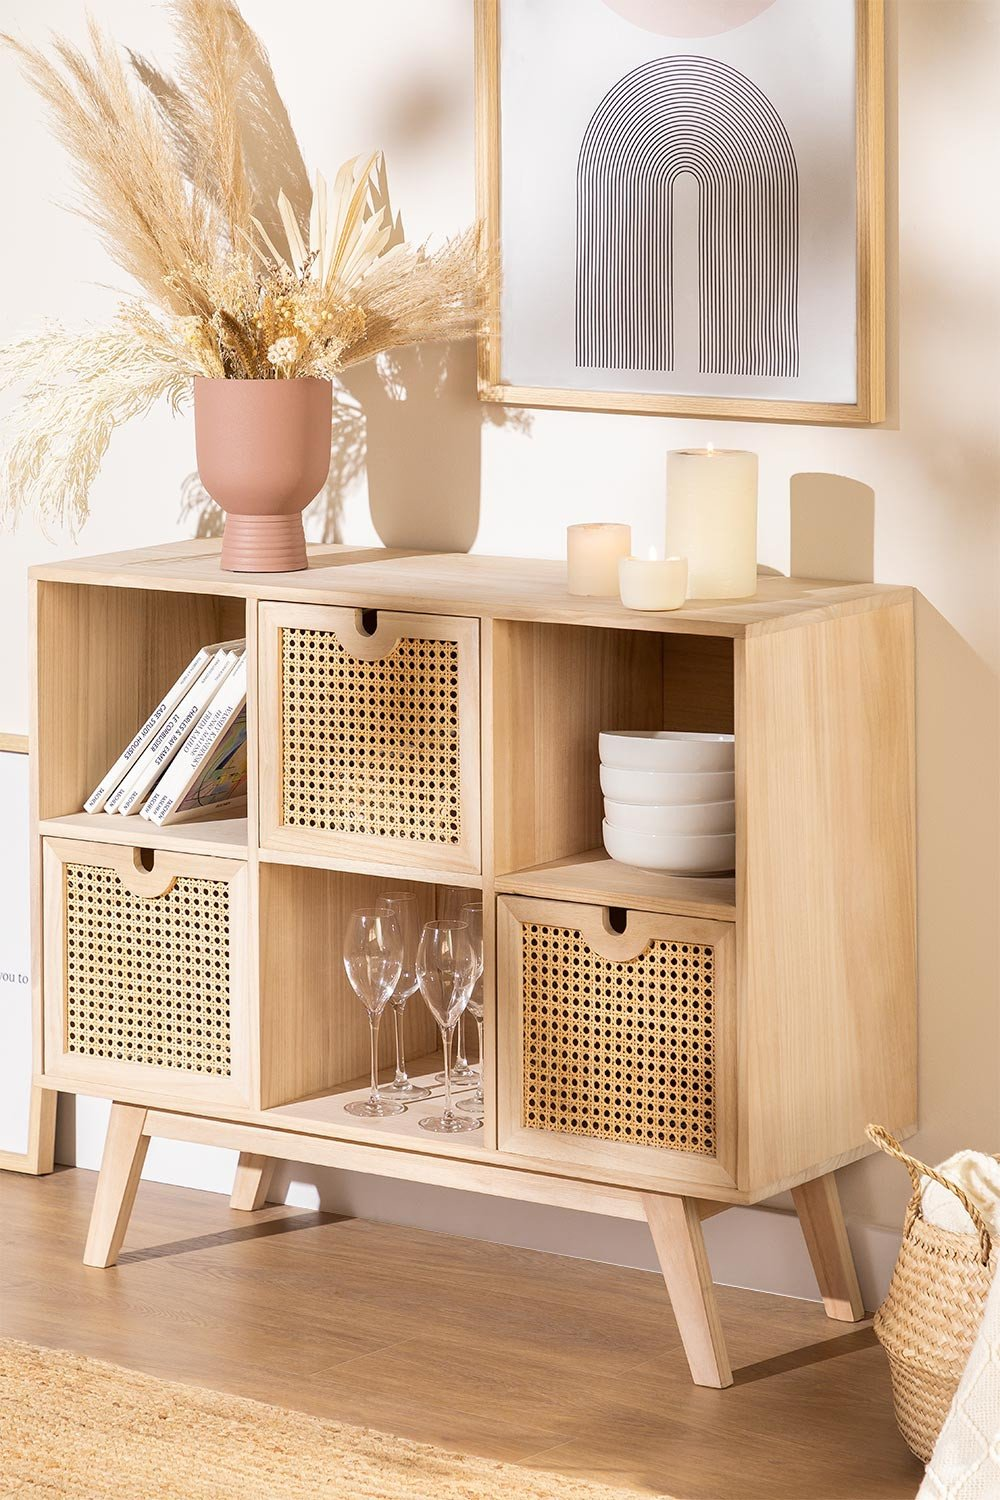 Ralik Style Wooden Sideboard with Drawers, gallery image 1